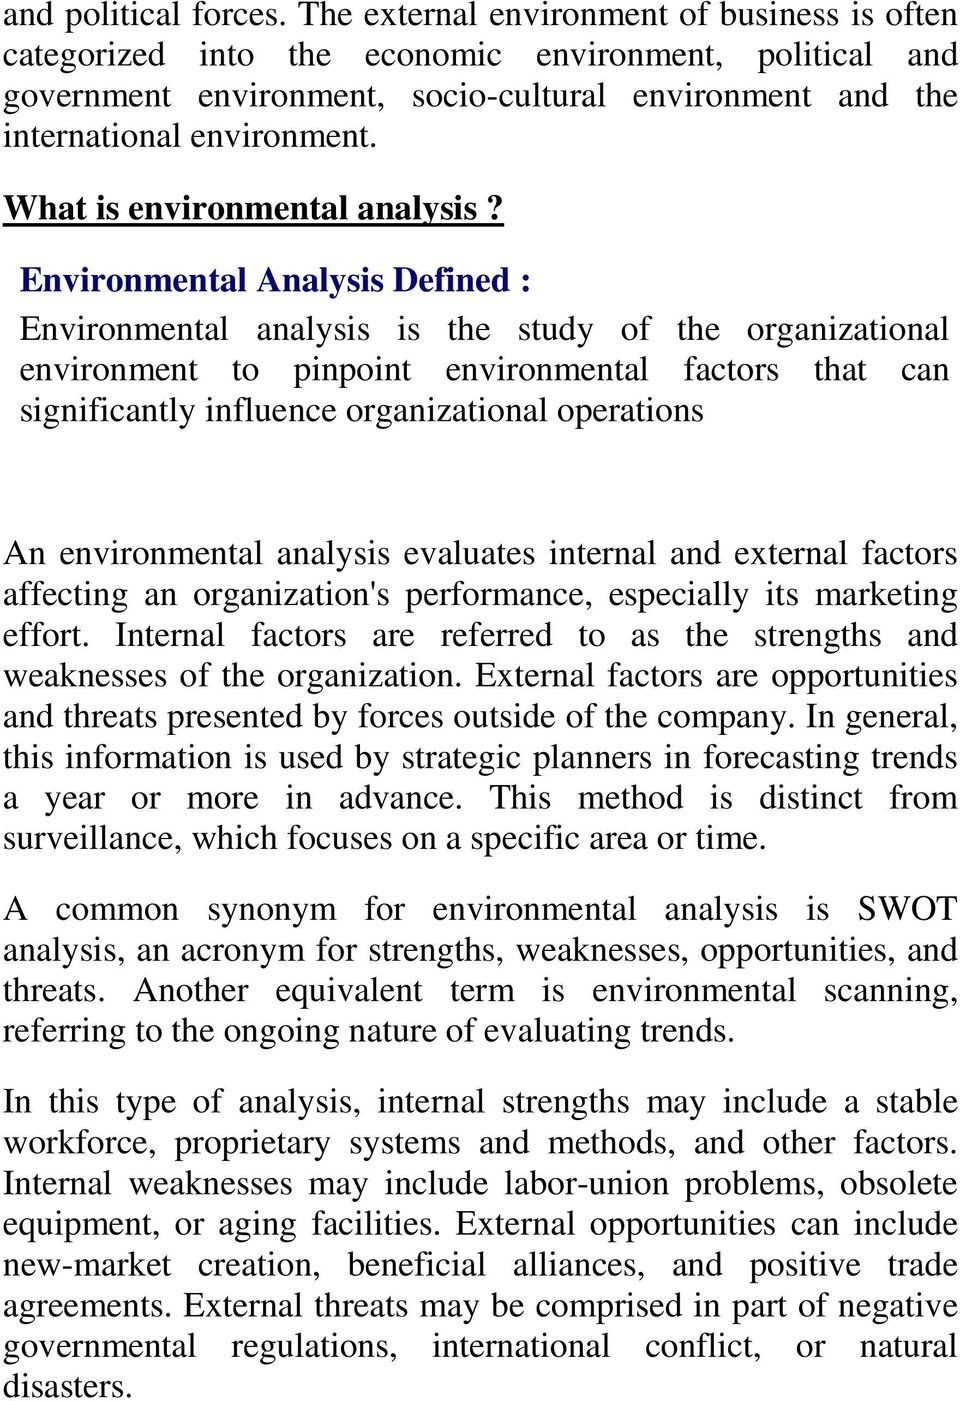 What is environmental analysis?